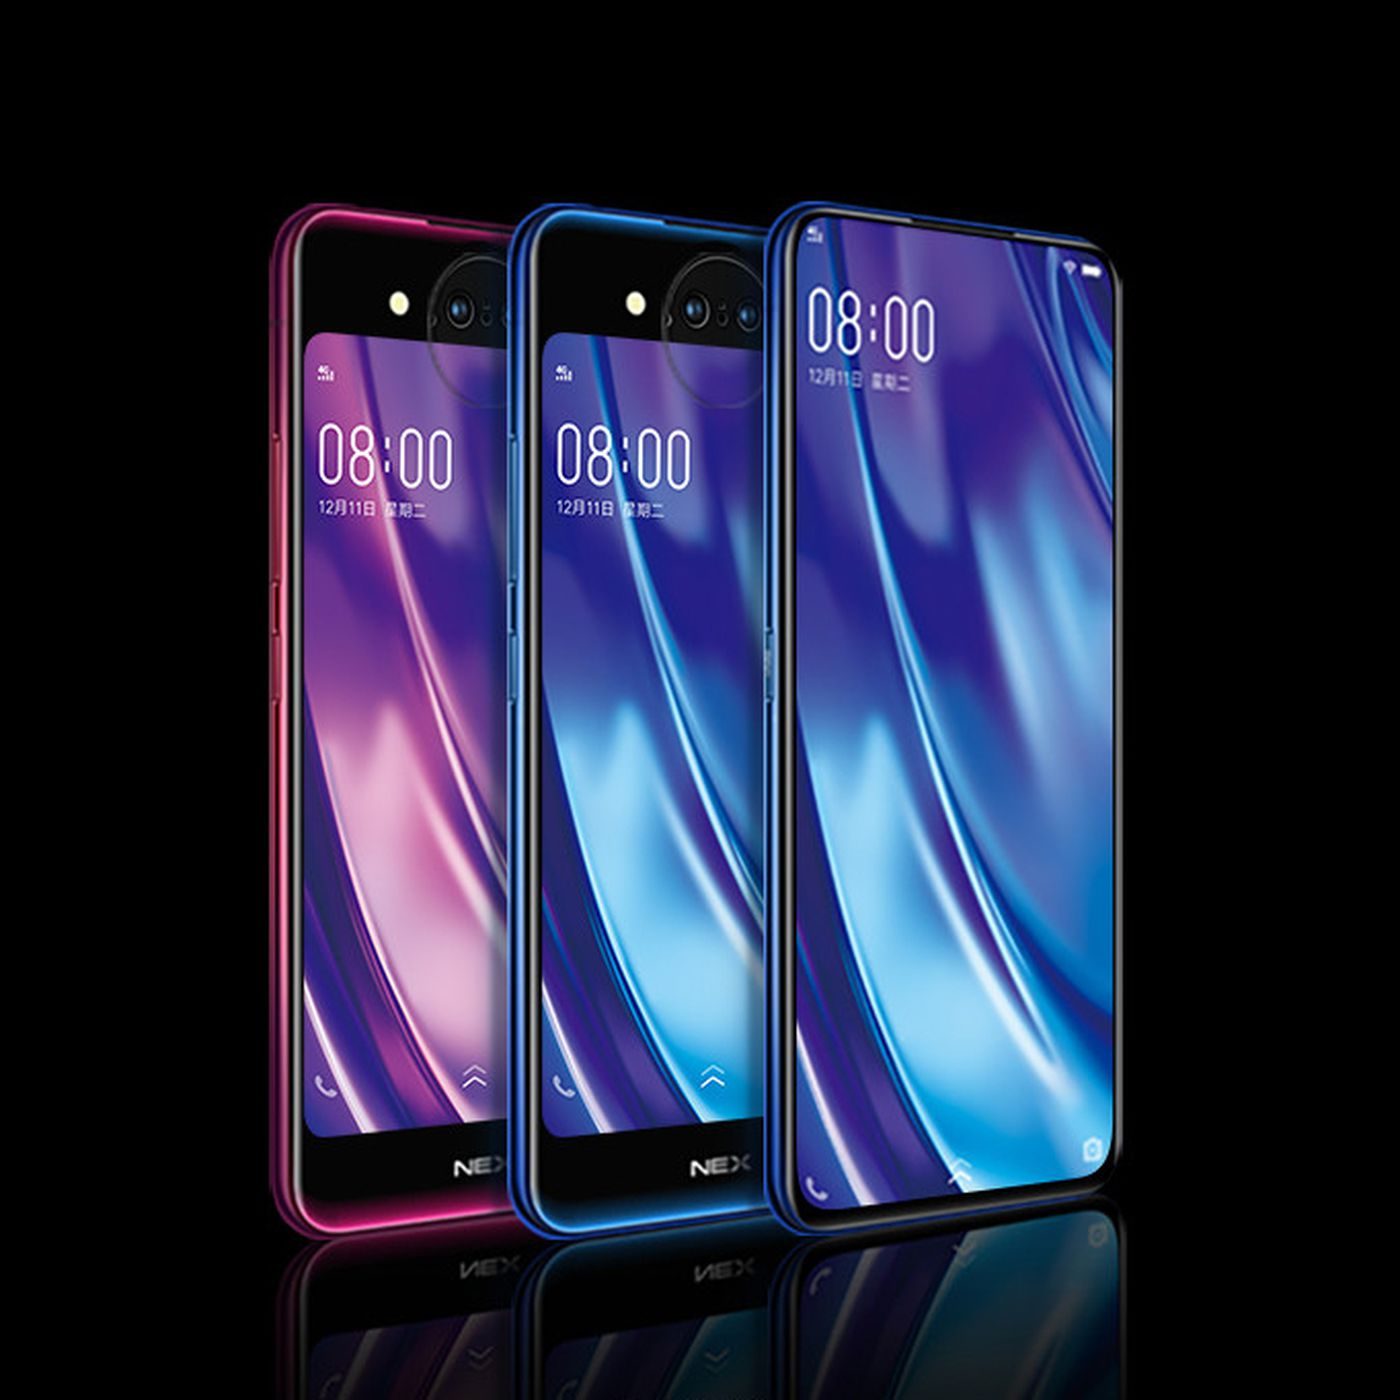 Vivo NEX Smartphone Specification and Price Tag in Nigeria